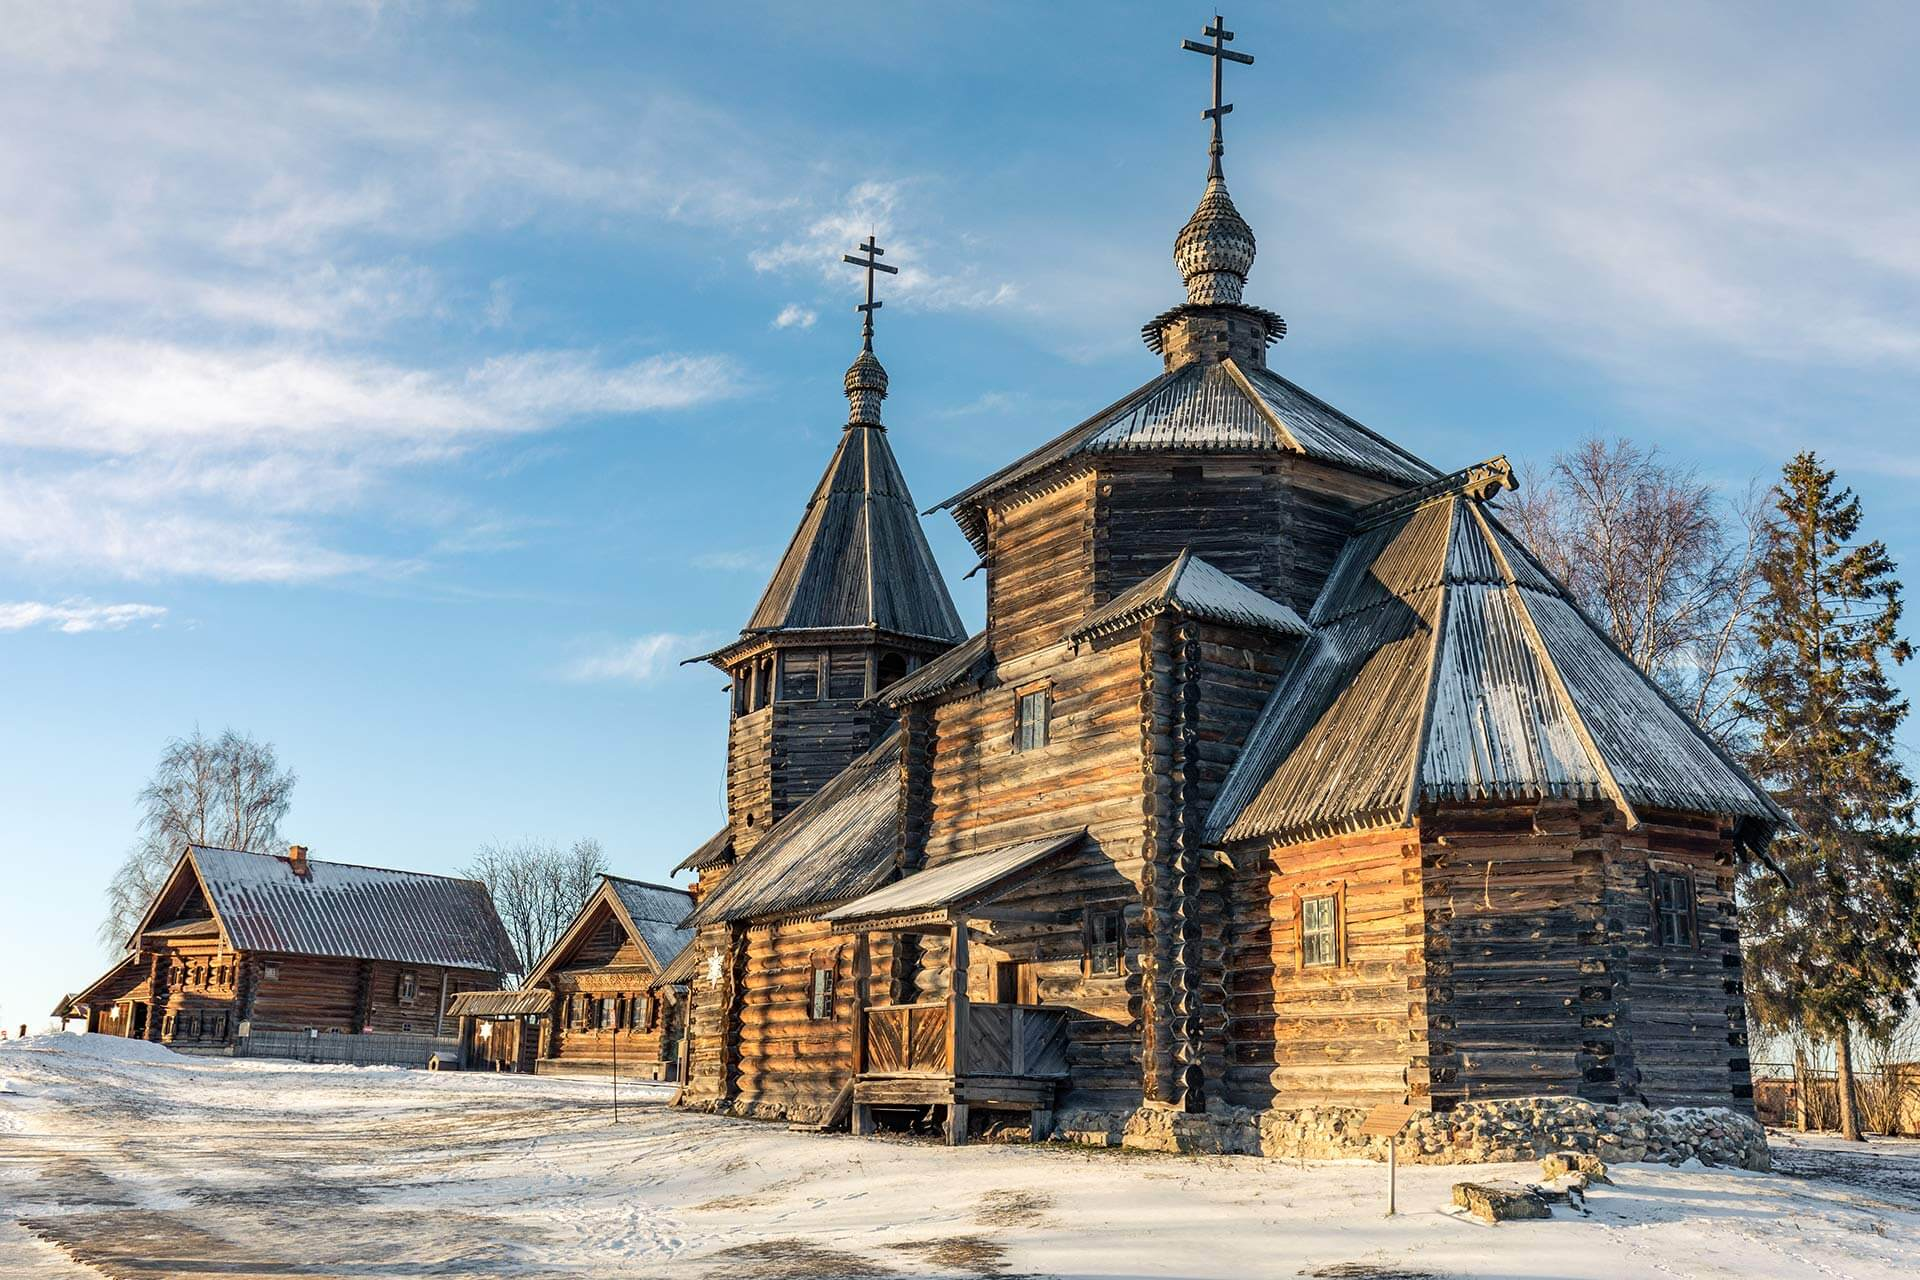 The wooden orthodox church construction